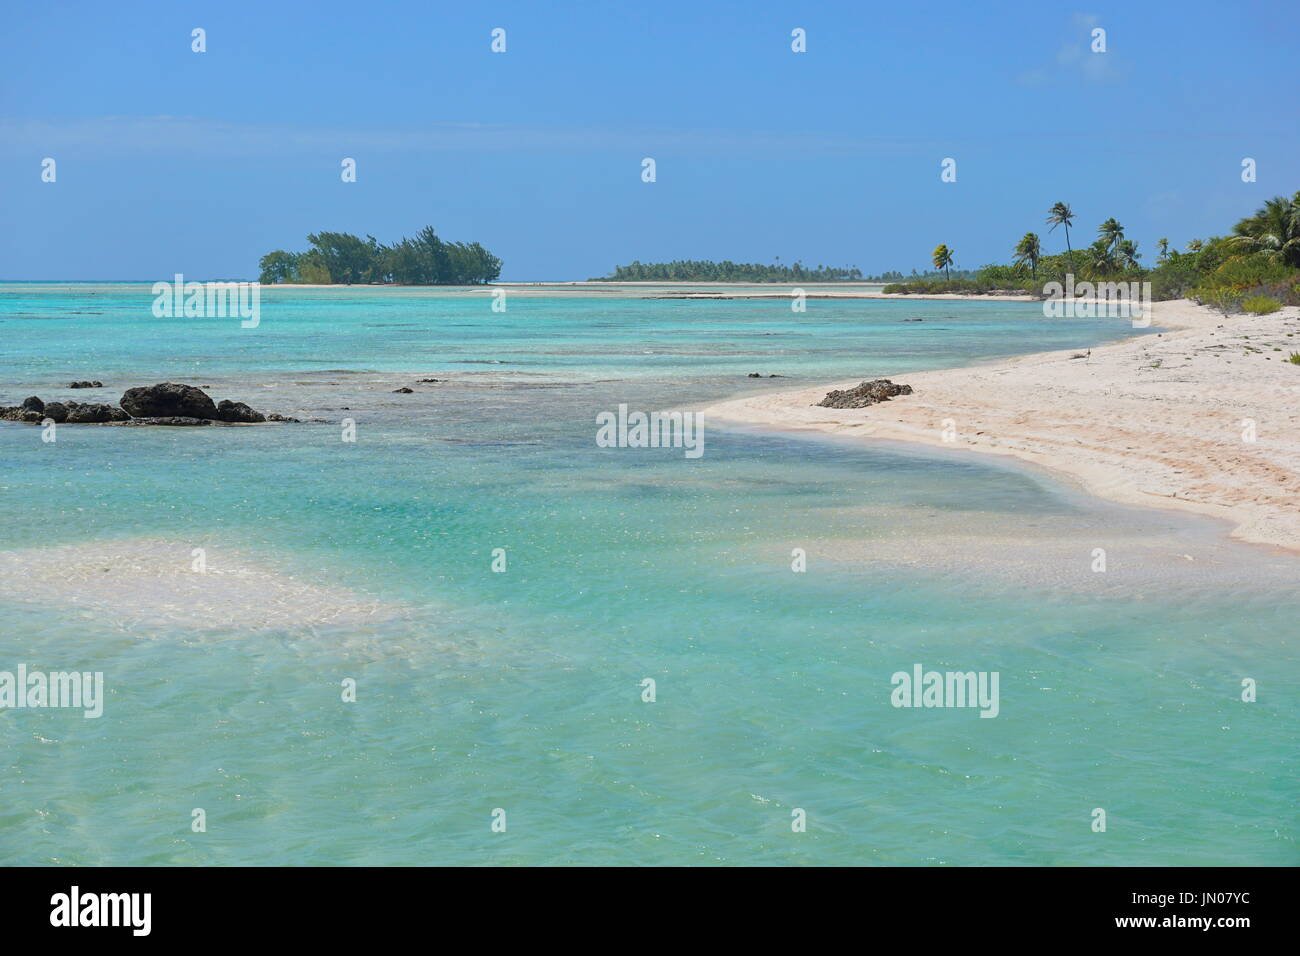 The inner lagoon and seashore of the atoll of Tikehau, Tuamotus archipelago, French Polynesia, south Pacific ocean - Stock Image